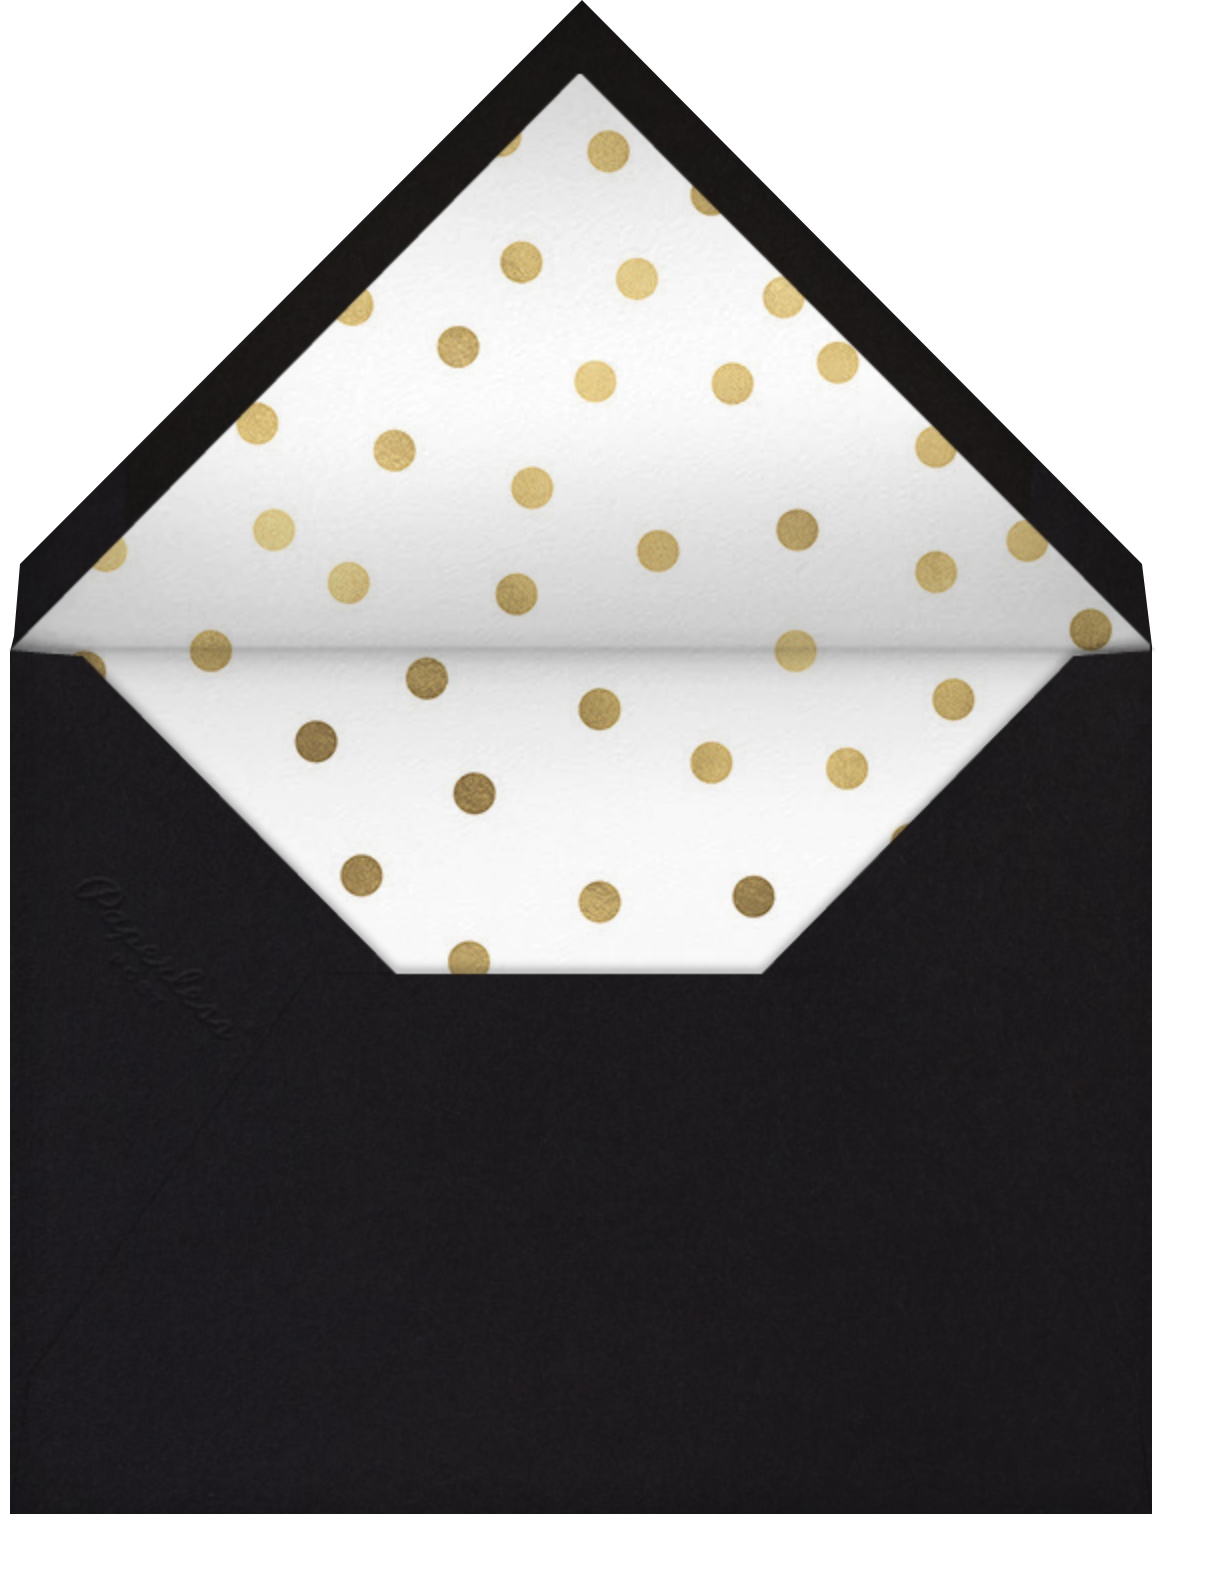 2020 Scene - Cheree Berry - New Year's Eve - envelope back